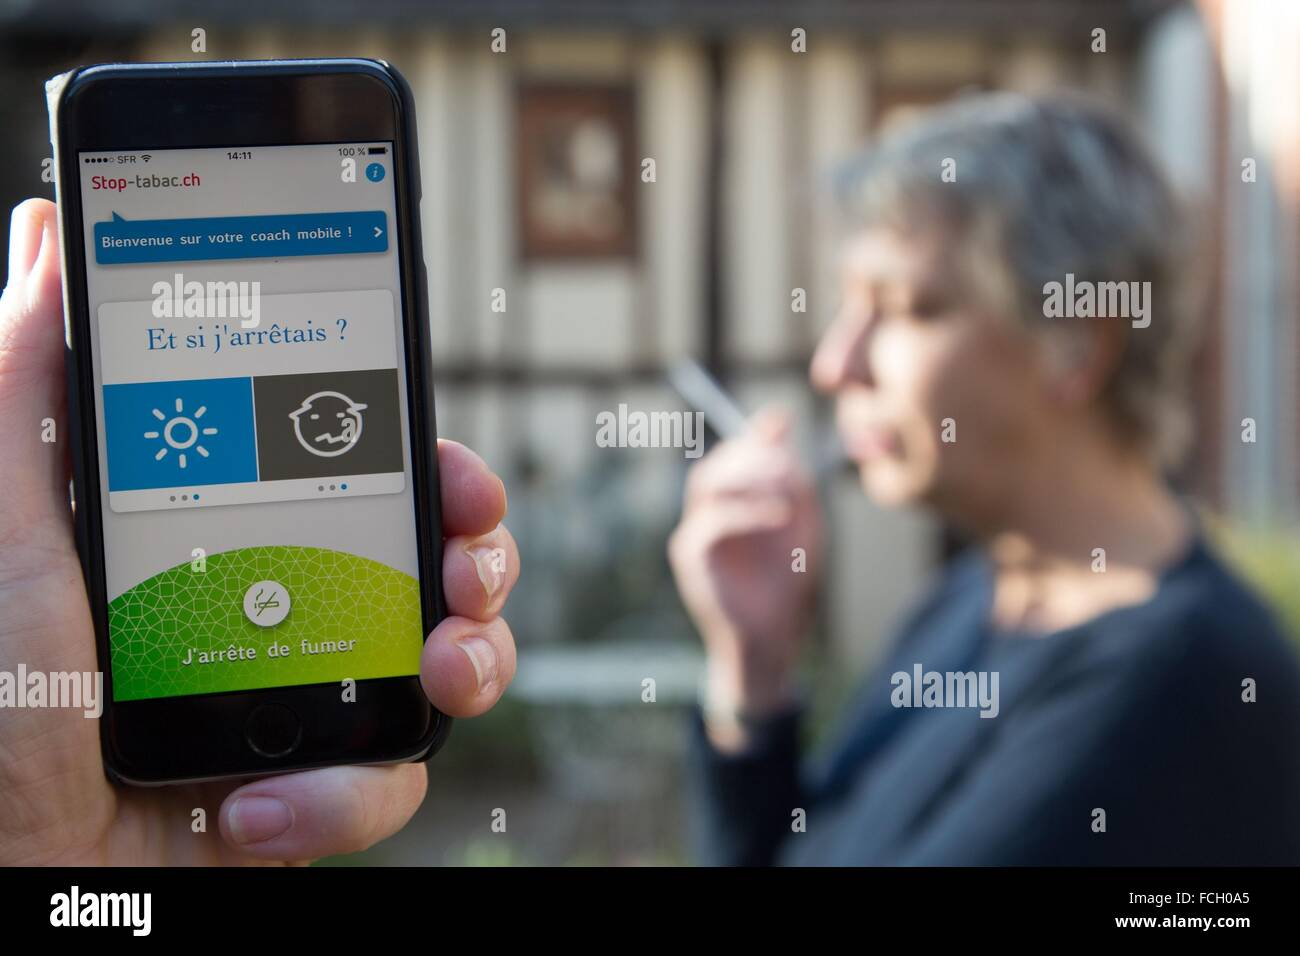 MOBILE APPLICATION FOR A CELL PHONE USER, SMOKER - Stock Image